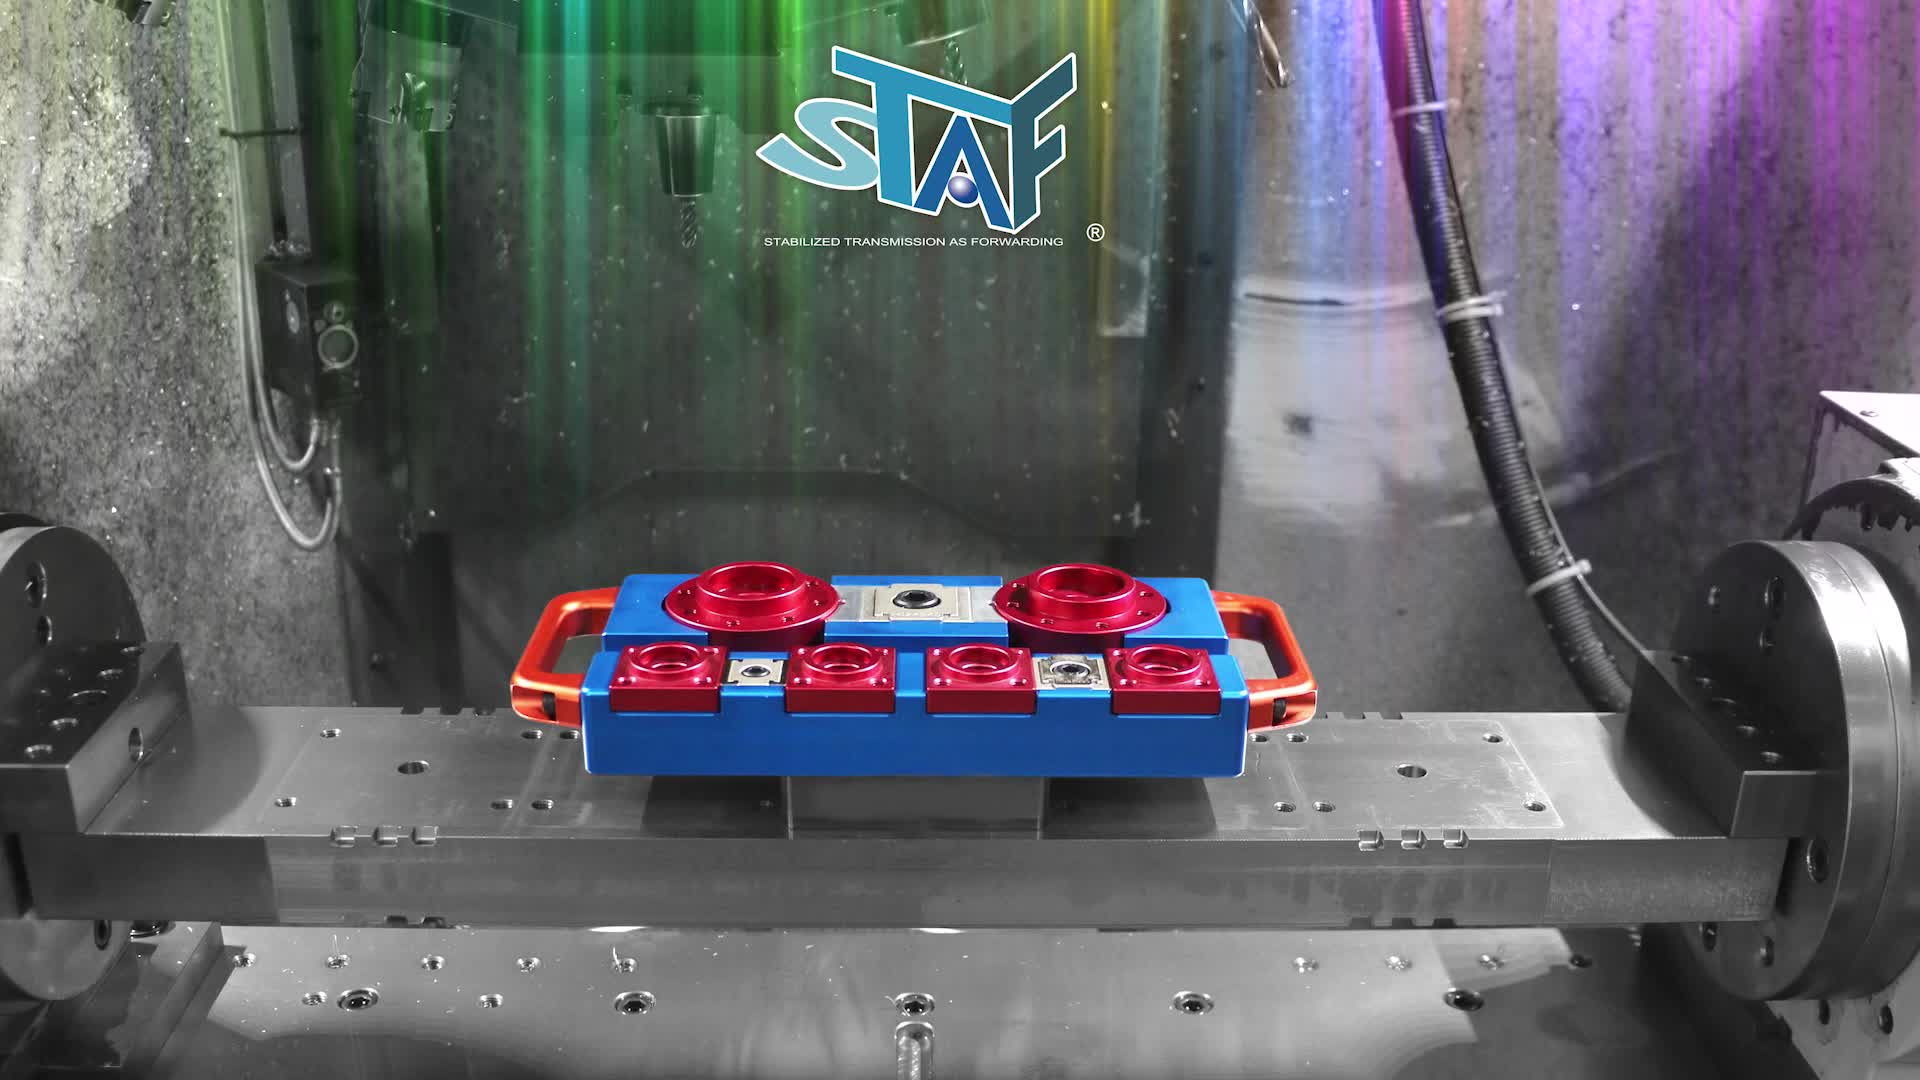 STAF M6 socket head screw Taiwan high quality clamping and vise